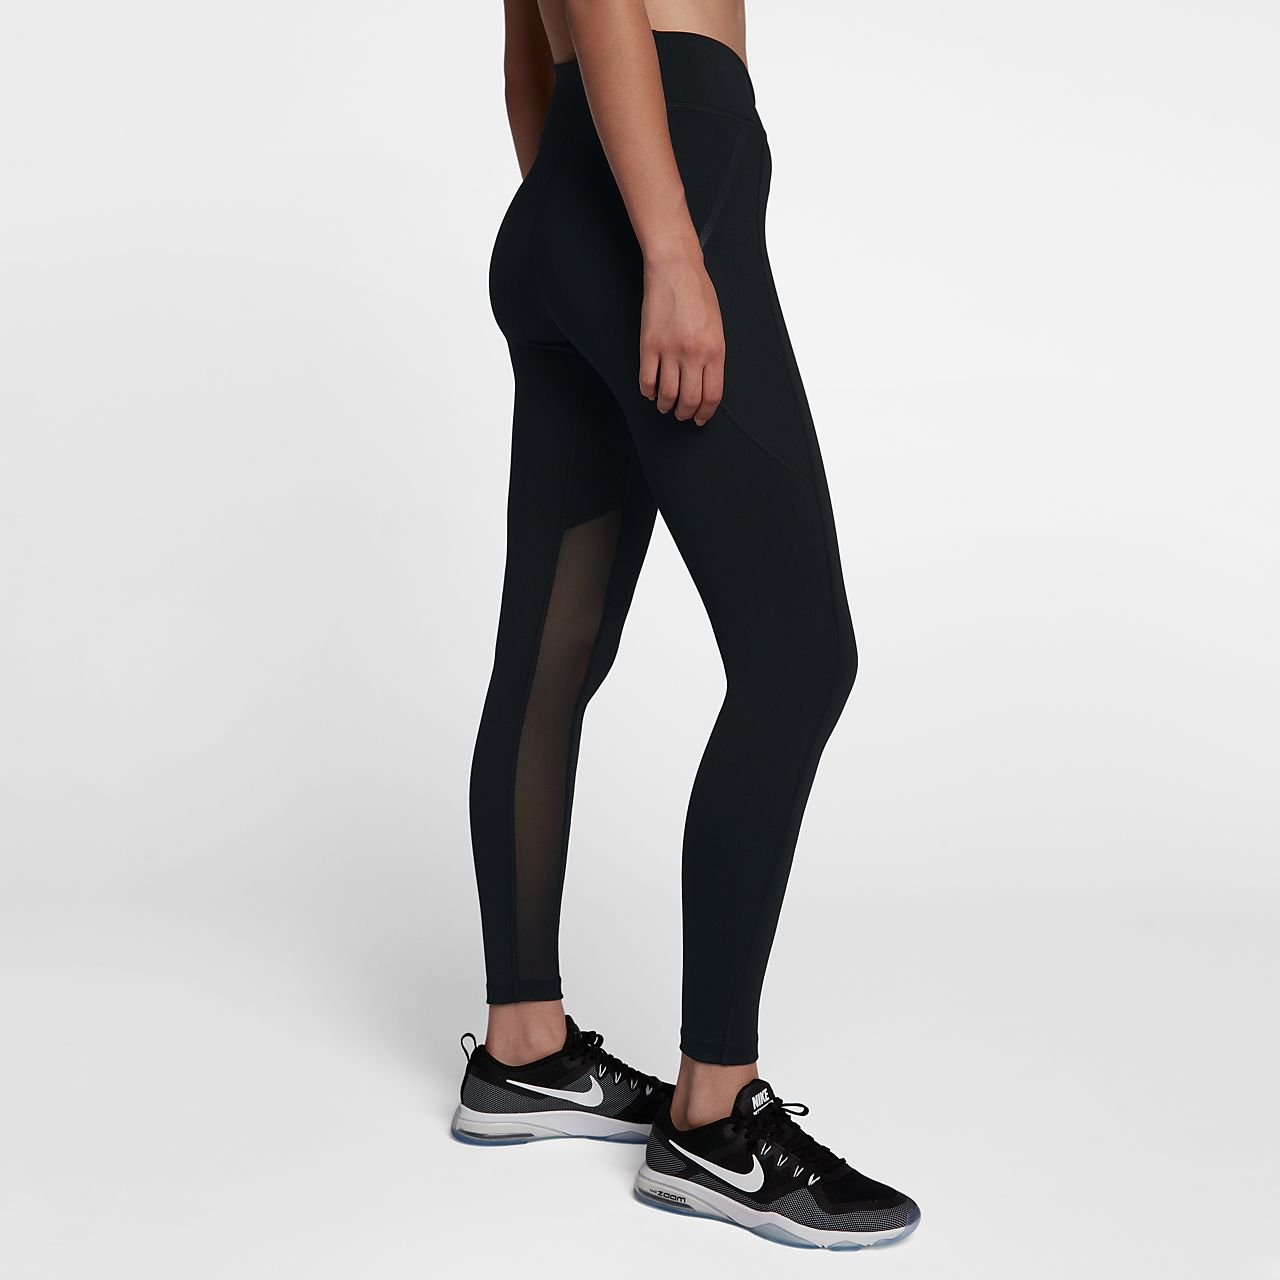 7878dba6a50d8 Nike Power Pocket Lux Women s High-Waist Training Tights. Nike.com CA